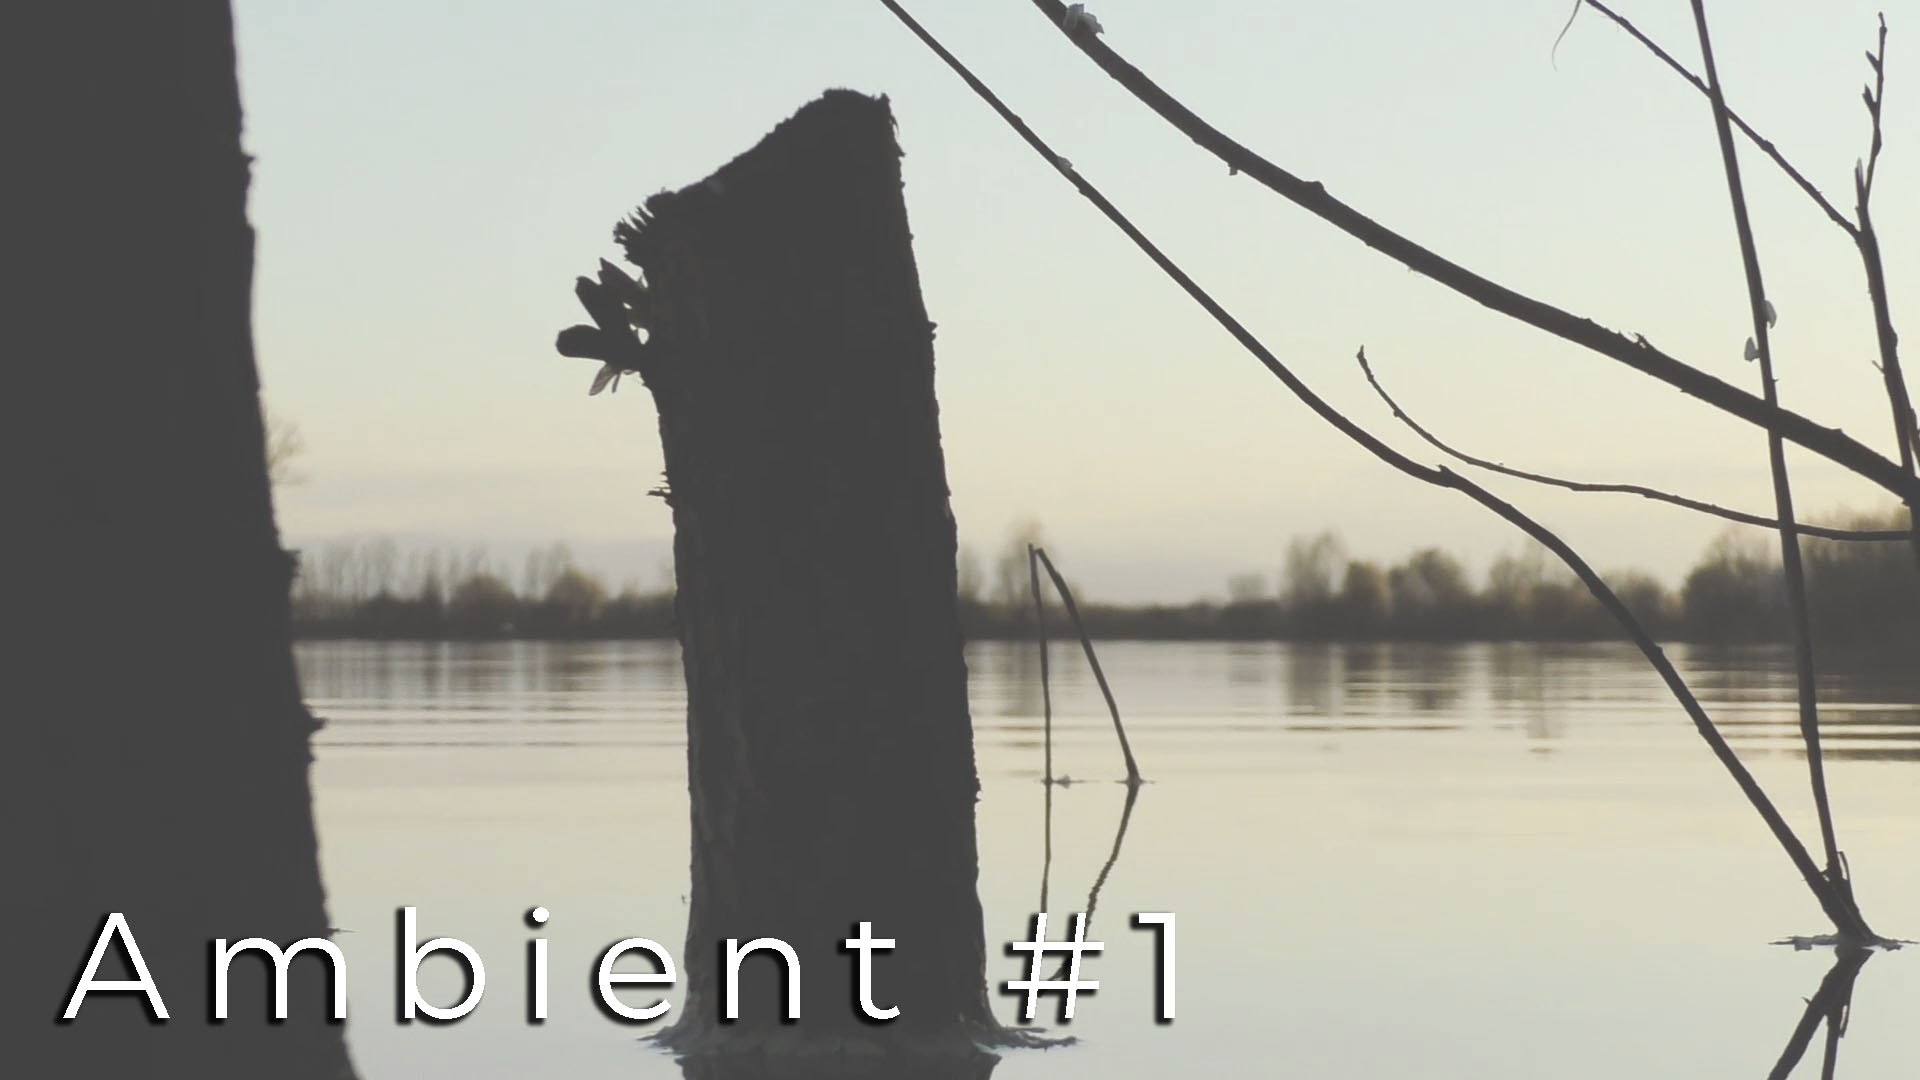 Ambient#1